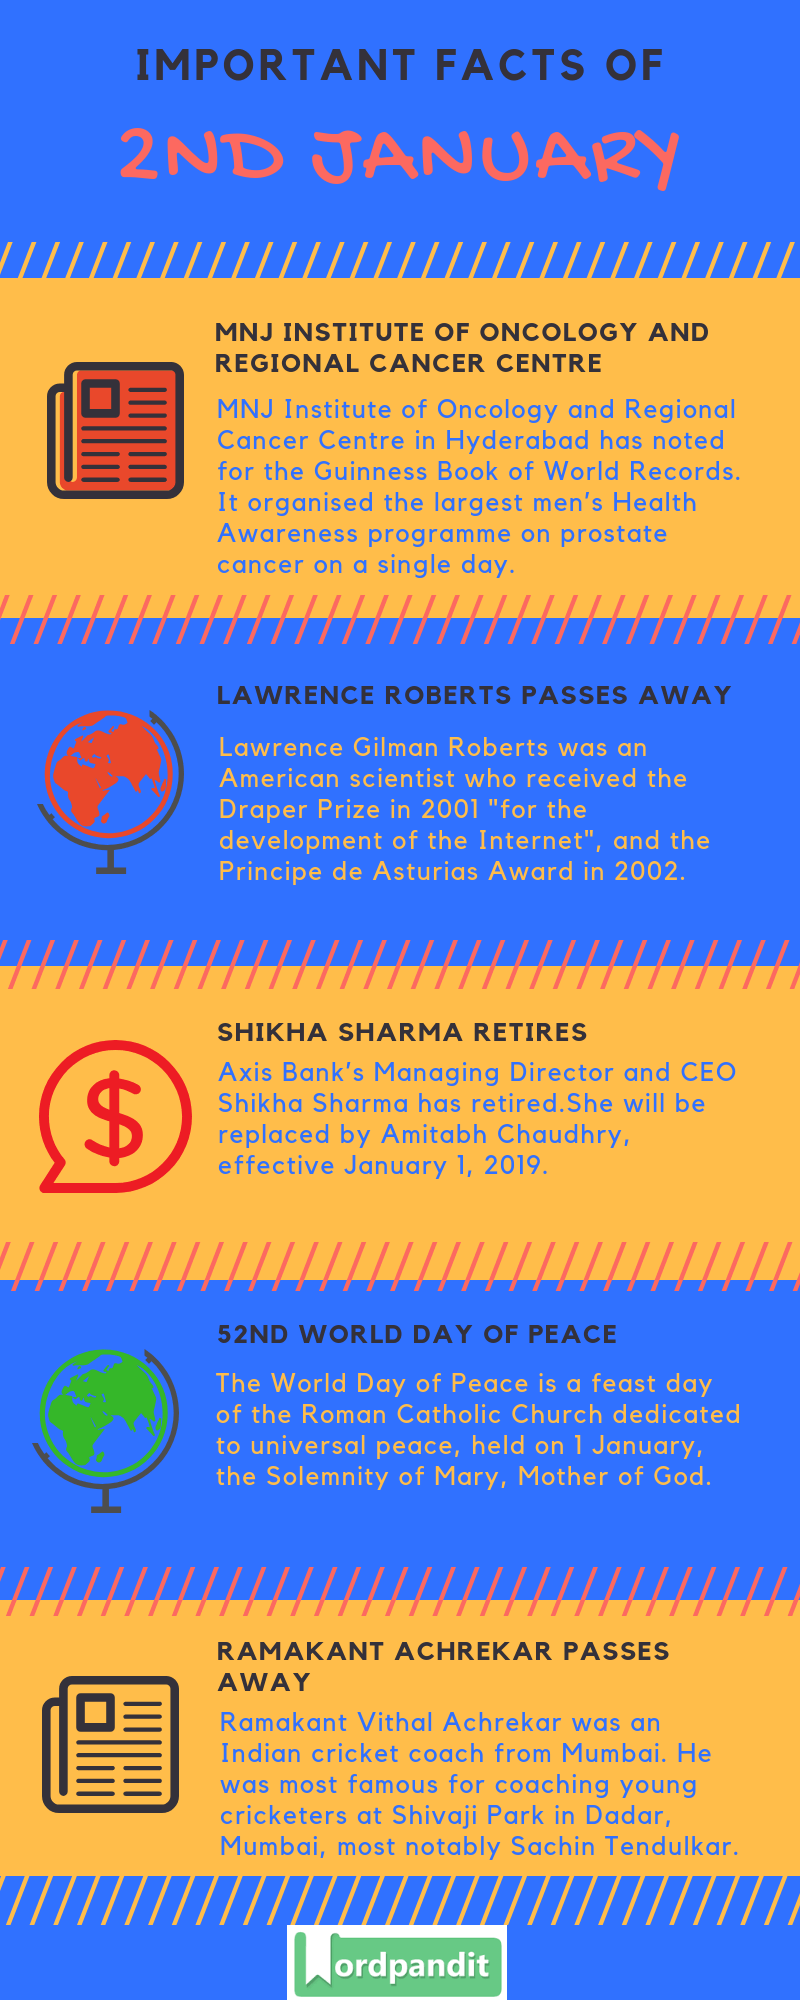 Daily Current Affairs 2 January 2019 Current Affairs Quiz 2 January 2019 Current Affairs Infographic